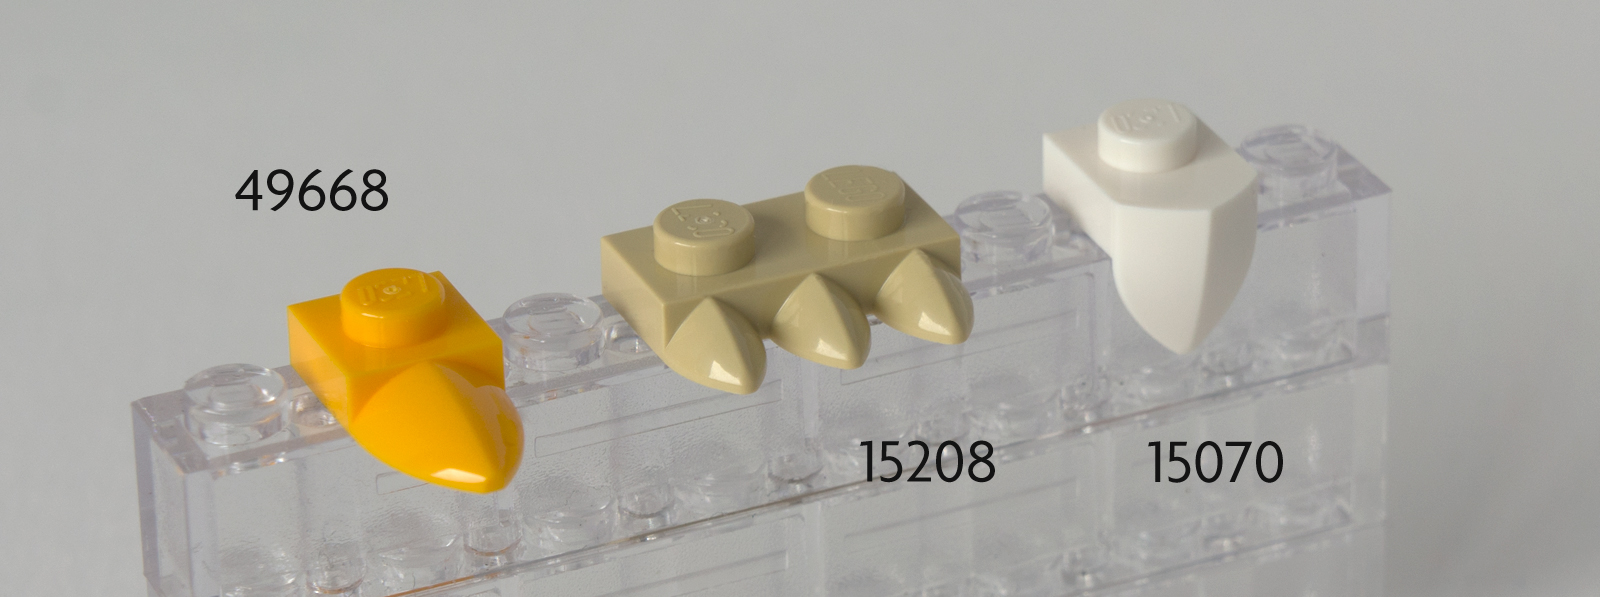 NEW LEGO Part Number 15070 in a choice of 3 colours